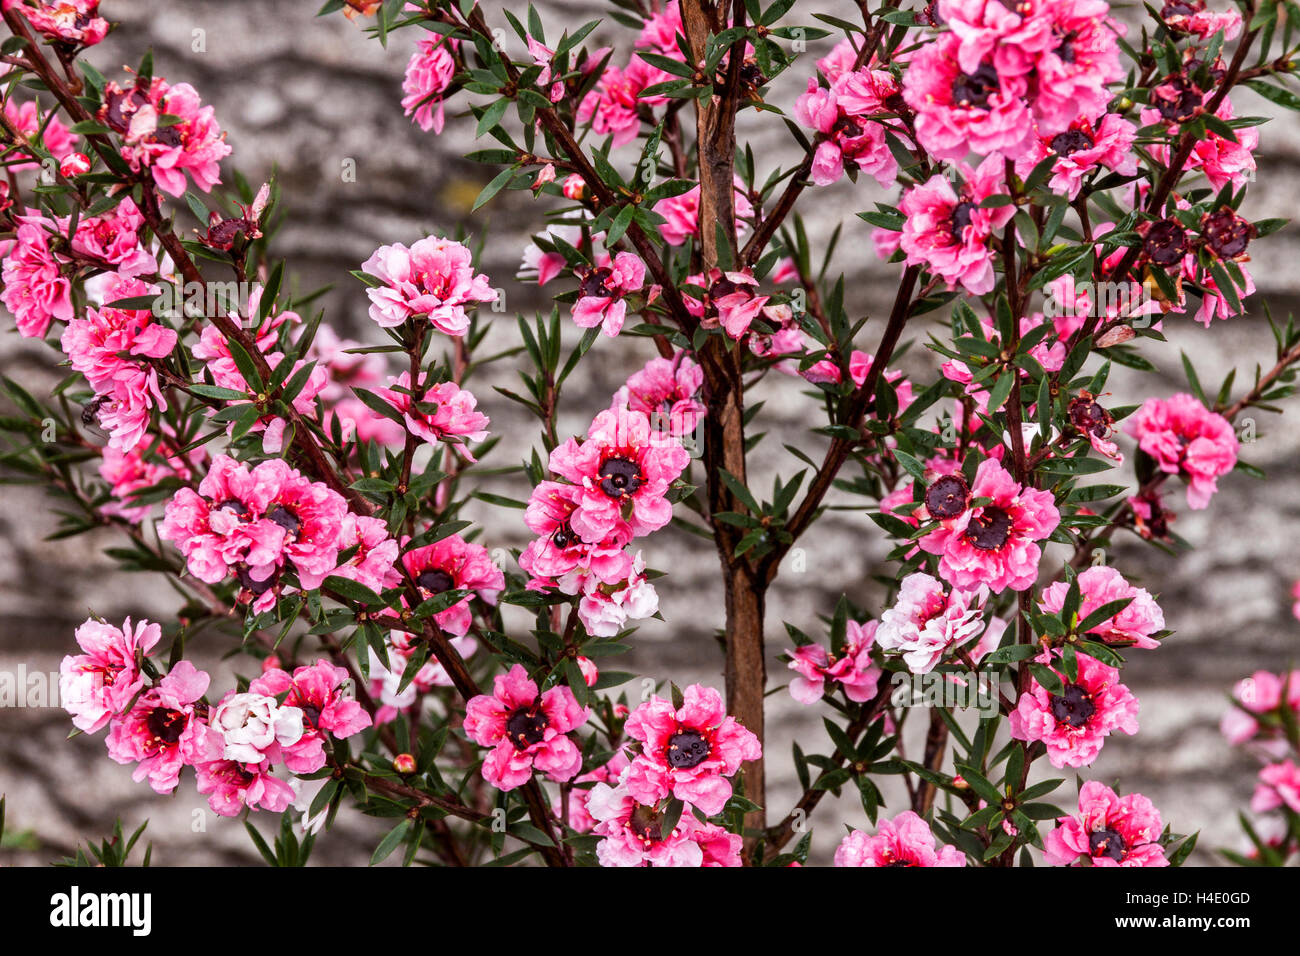 Tiny pink flowers stock photos tiny pink flowers stock images alamy close up abstract view of tiny pink flowers of the australian tea bush stock image mightylinksfo